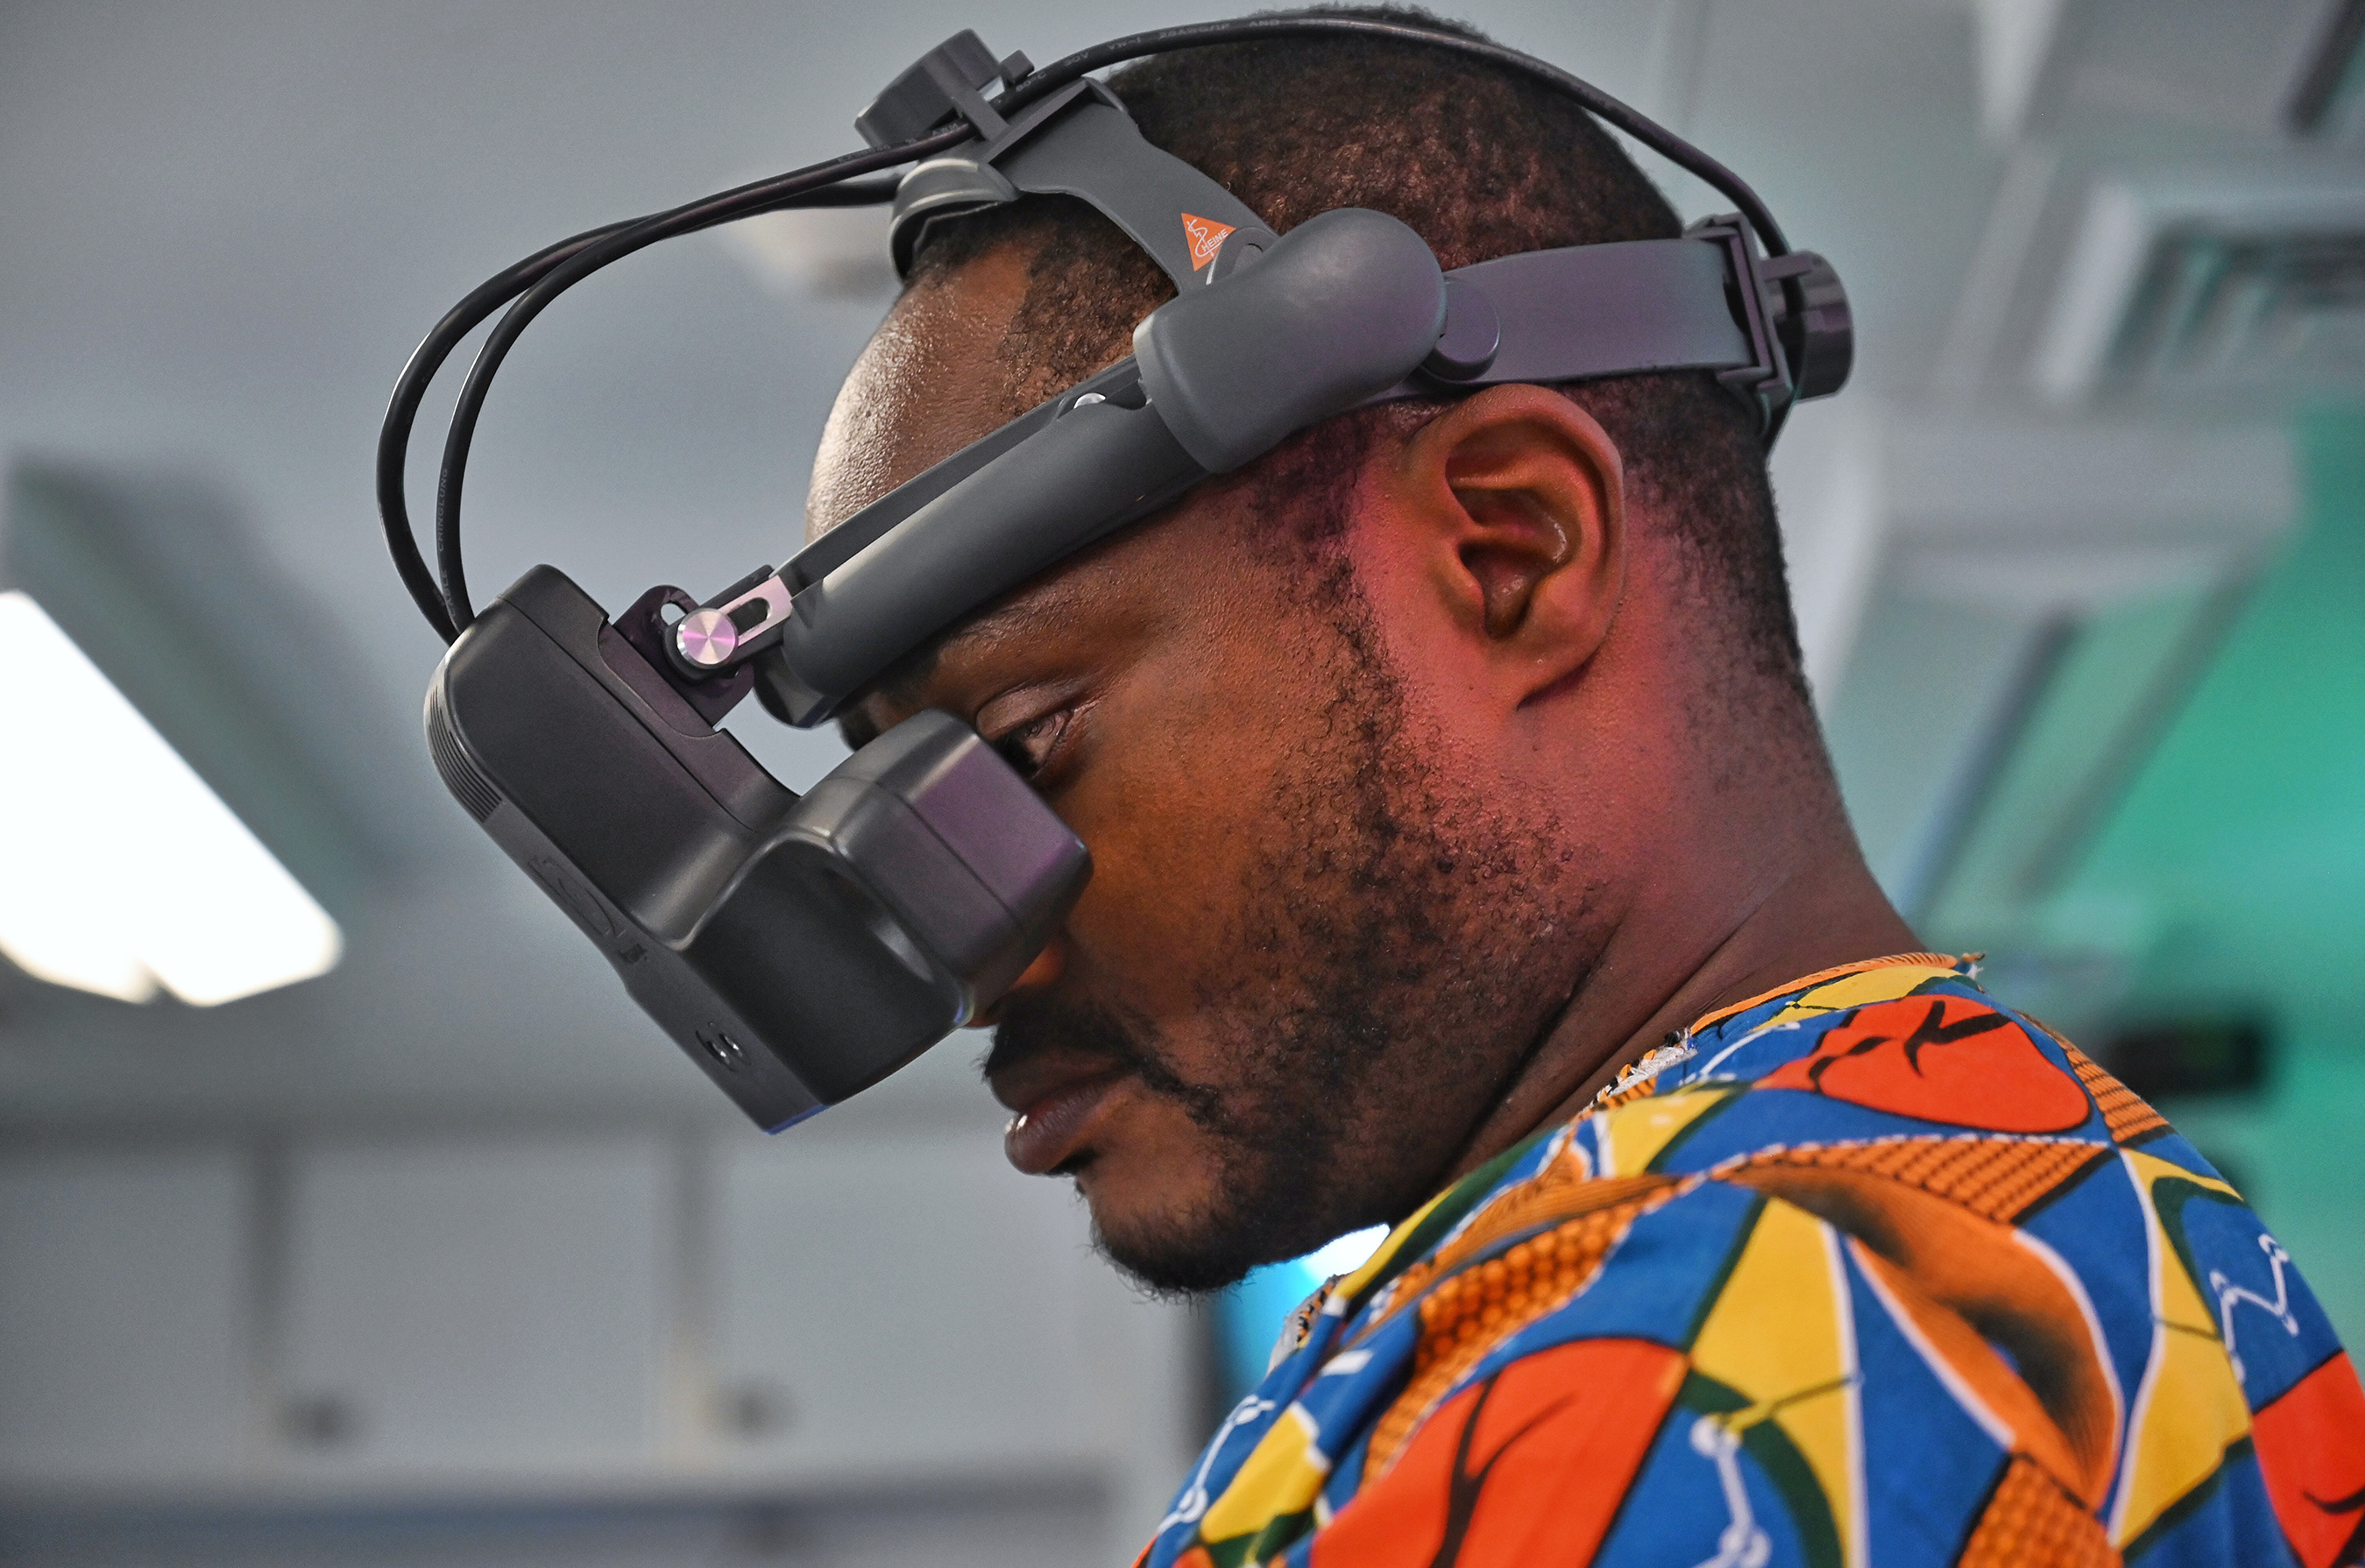 Orbis's new Simulation Center Manual gives training hospitals and teaching institutions the guidance they need to create their own simulation centers and training programs. A participant from Ghana uses the latest in virtual reality to practice detecting retinal diseases in 2019. Photo: Geoff Oliver Bugbee